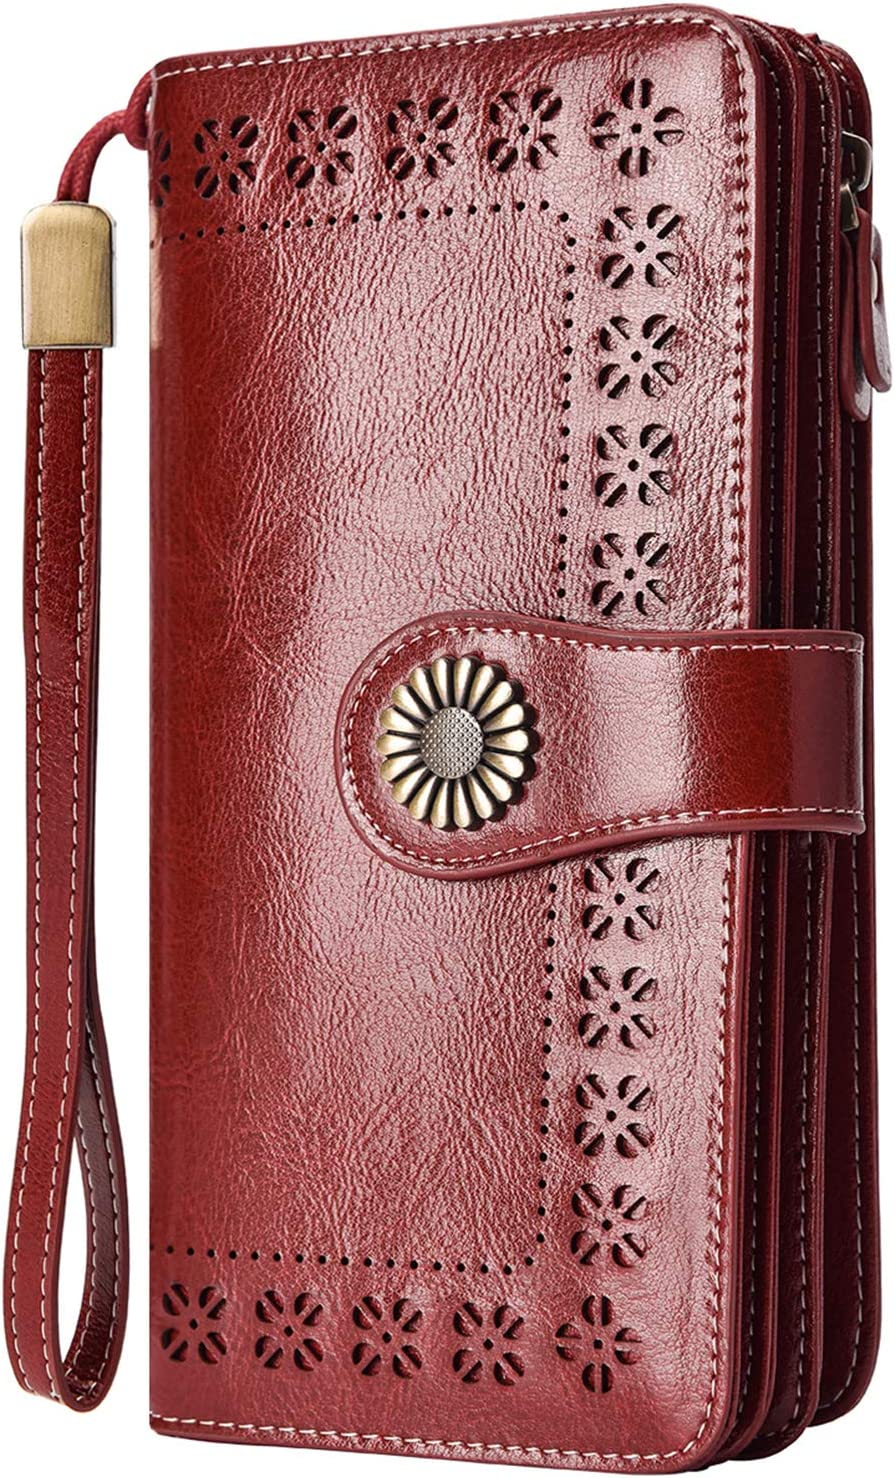 Charmore Ranking TOP13 Womens Wallet RFID Blocking Clutch Sale C Multi Leather Card